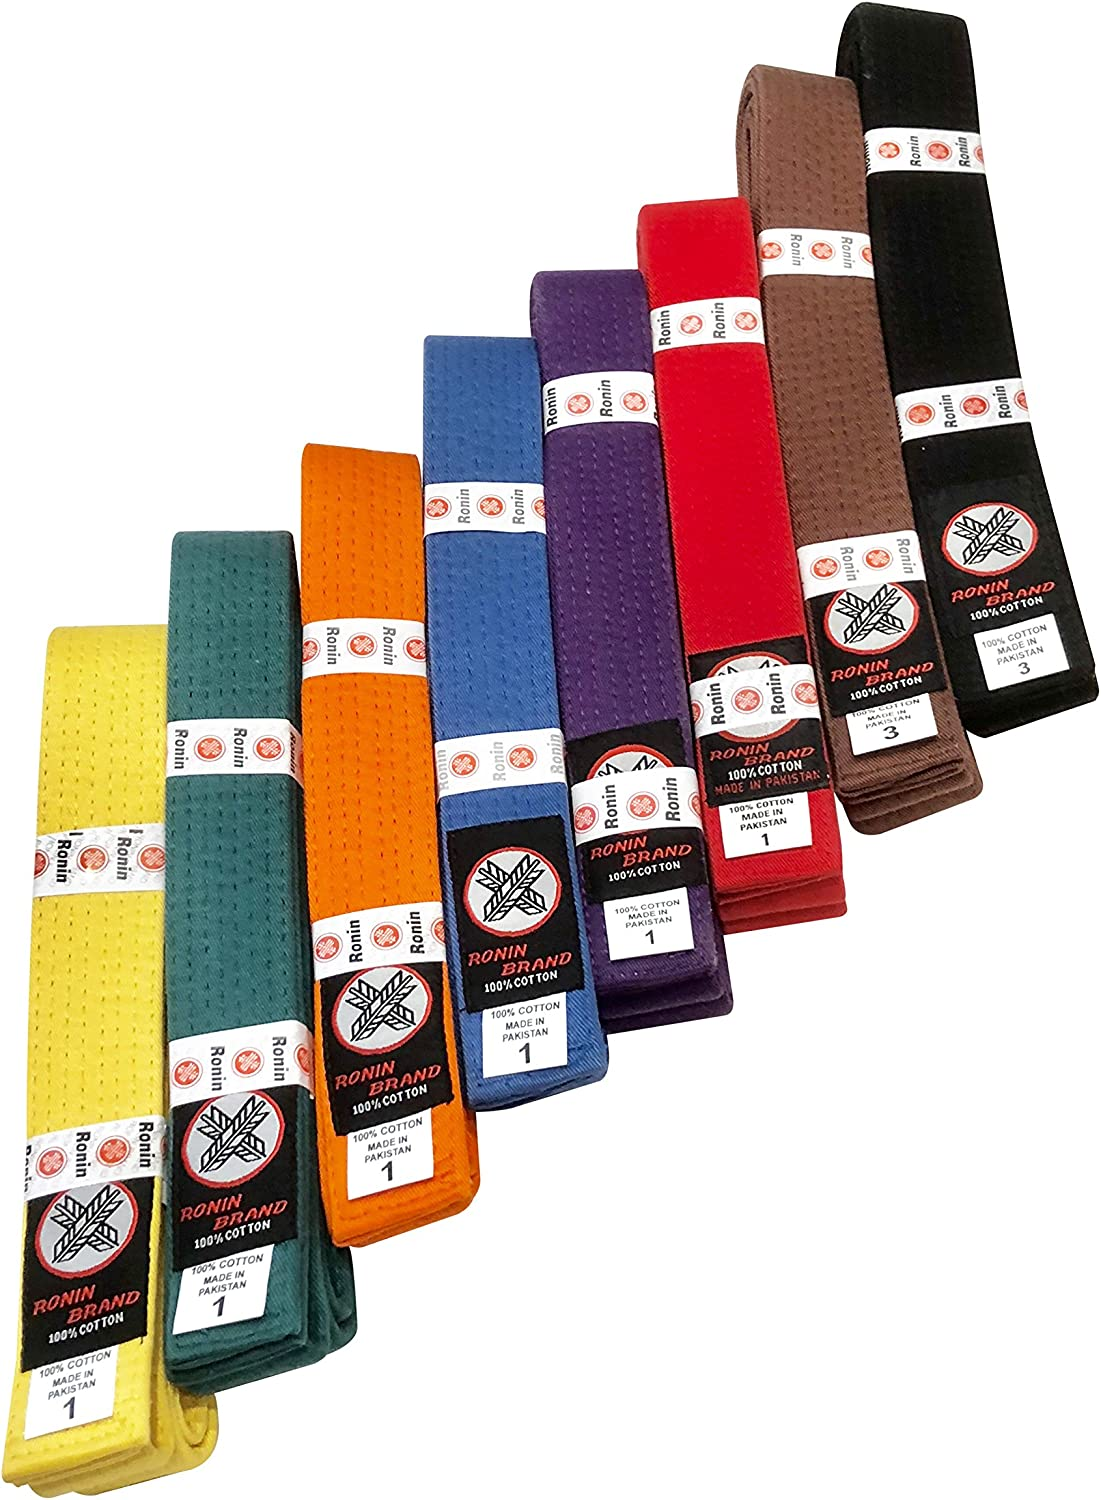 Blue Orange Green Red Yellow Brown Ronin Brand Martial Arts Uniform Solid Colored Rank Belt Purple Black in Quality